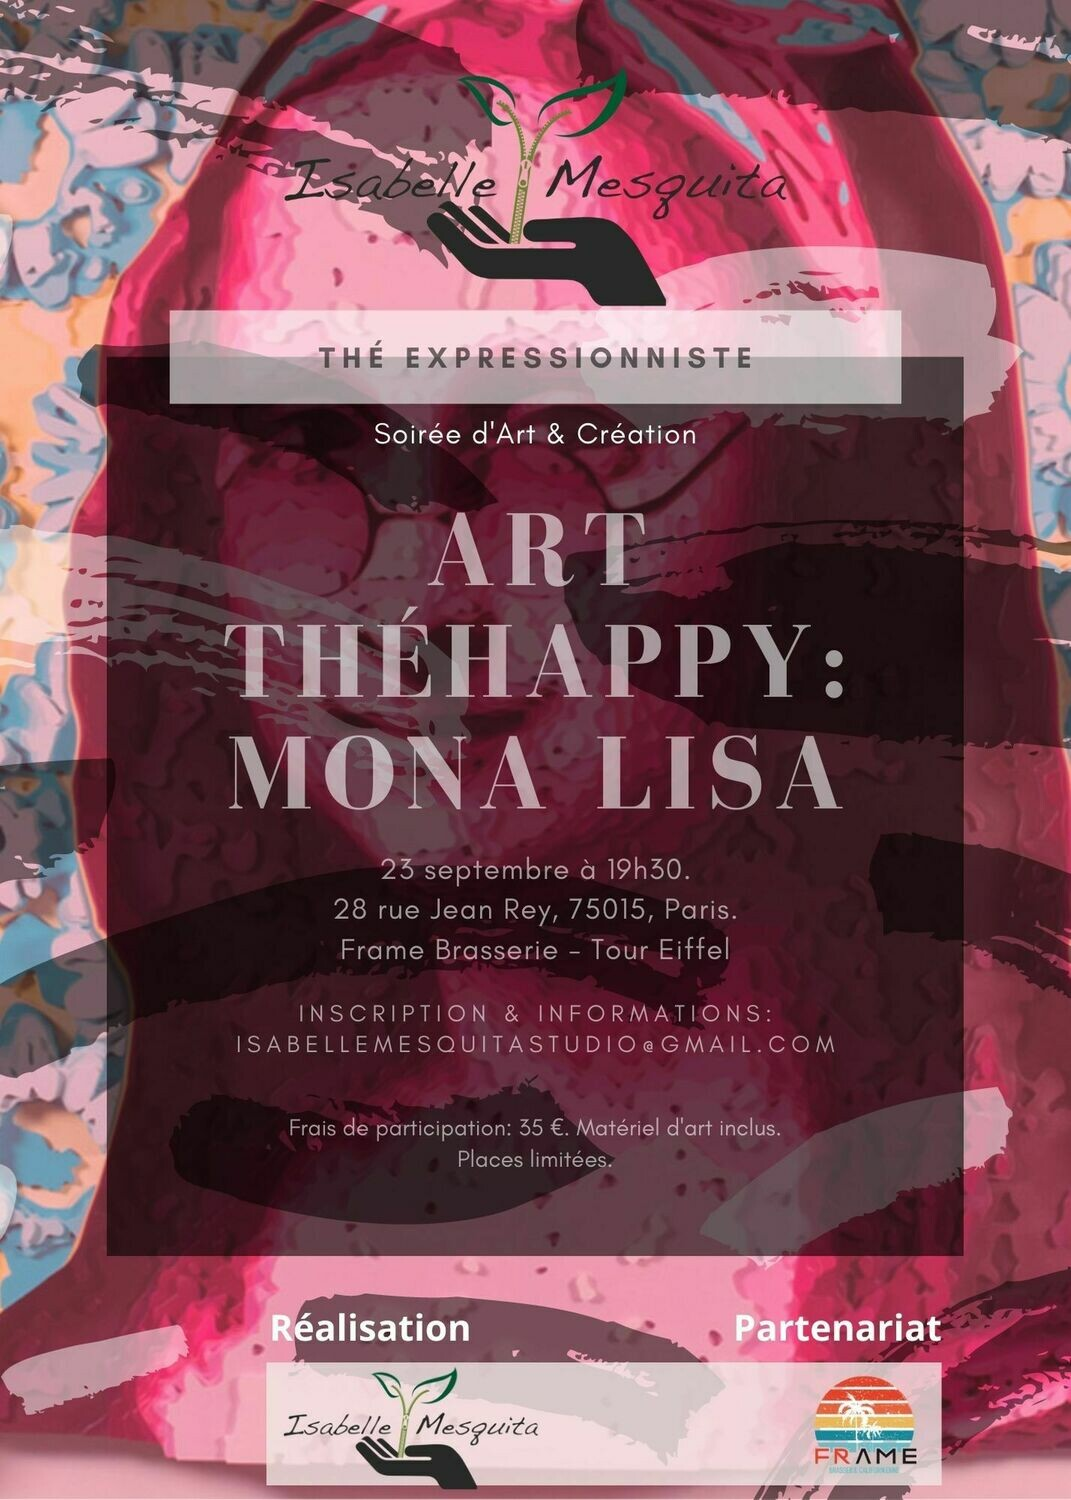 Thé Expressionniste: Art Théhappy Mona Lisa